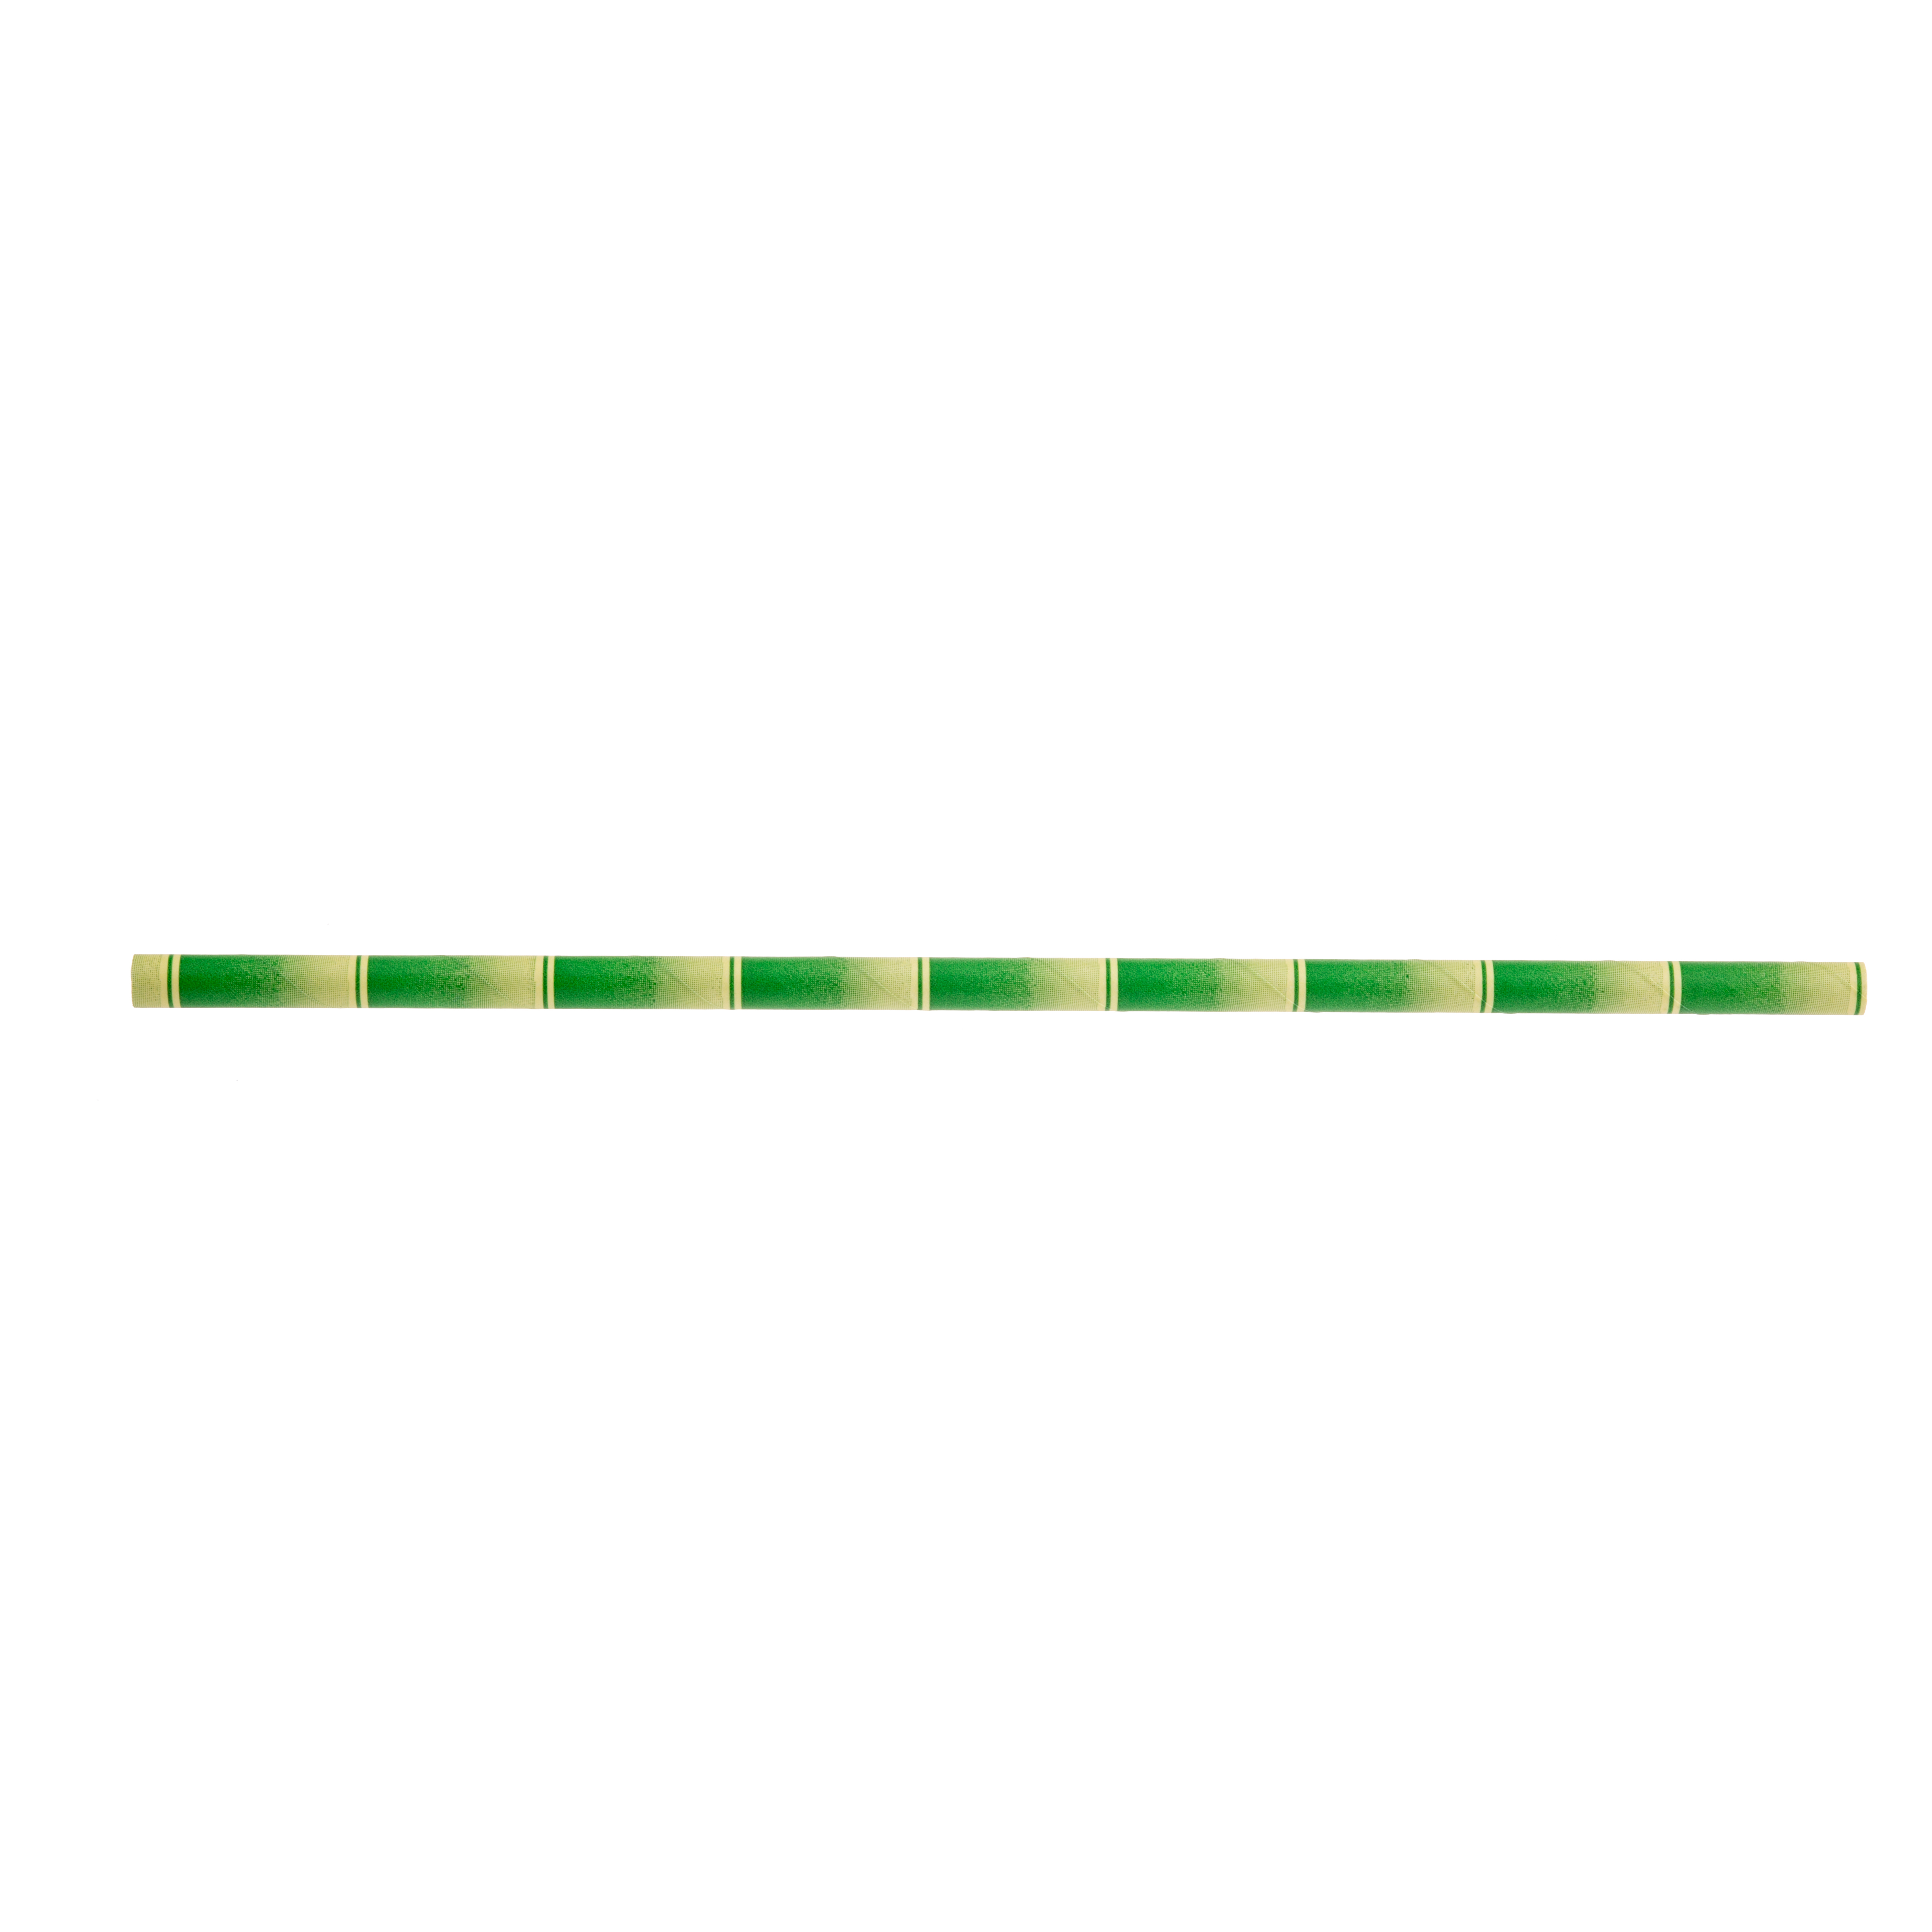 TableCraft Products 100136 straws